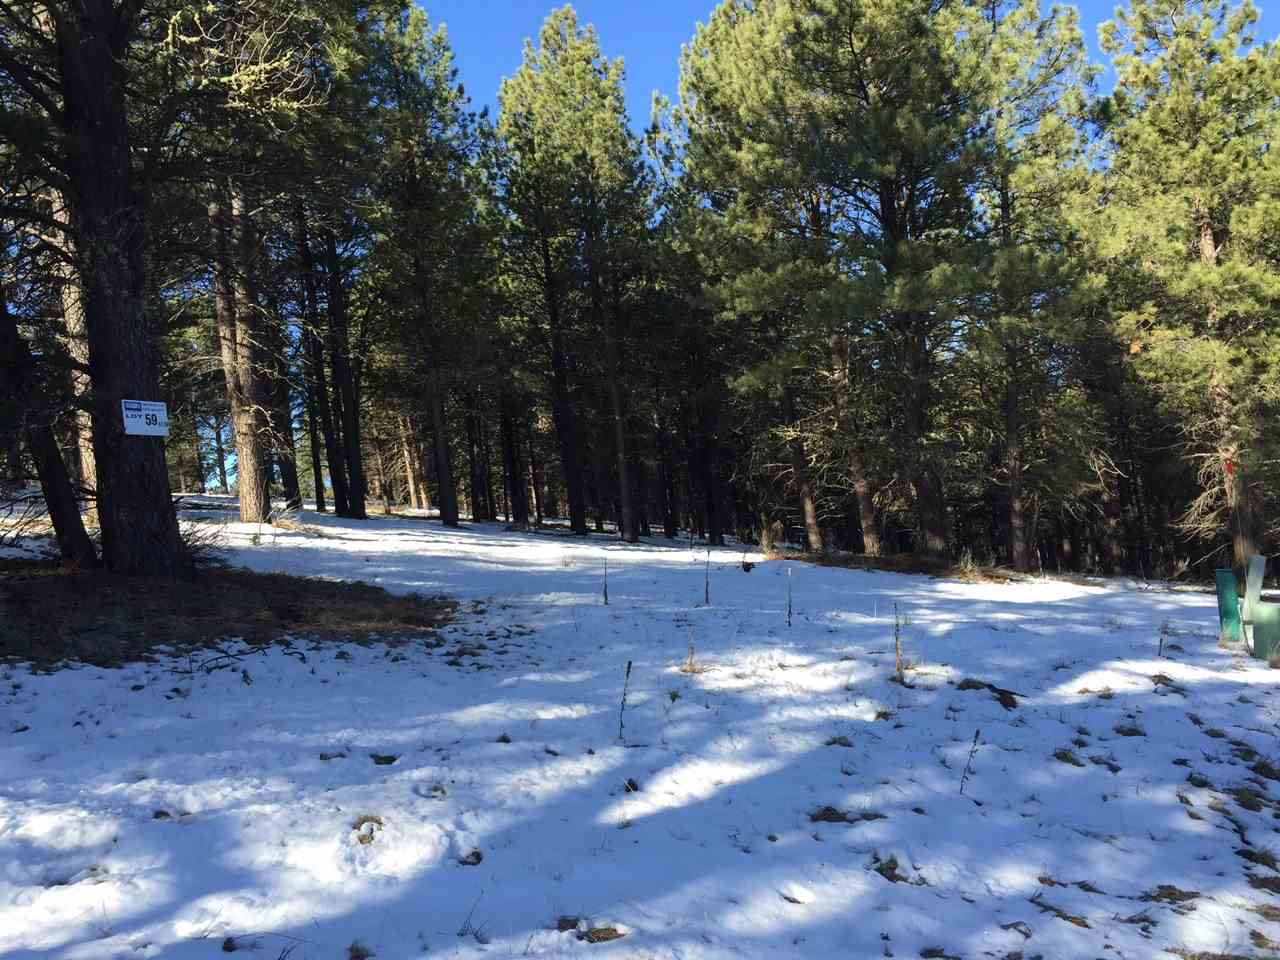 Great lot with paved road access in front.  Close to the Community Center and also zoned for multi- family.  Location great for future rentals.  Proximity to ski area a plus.  Beautifully treed with mature pine.